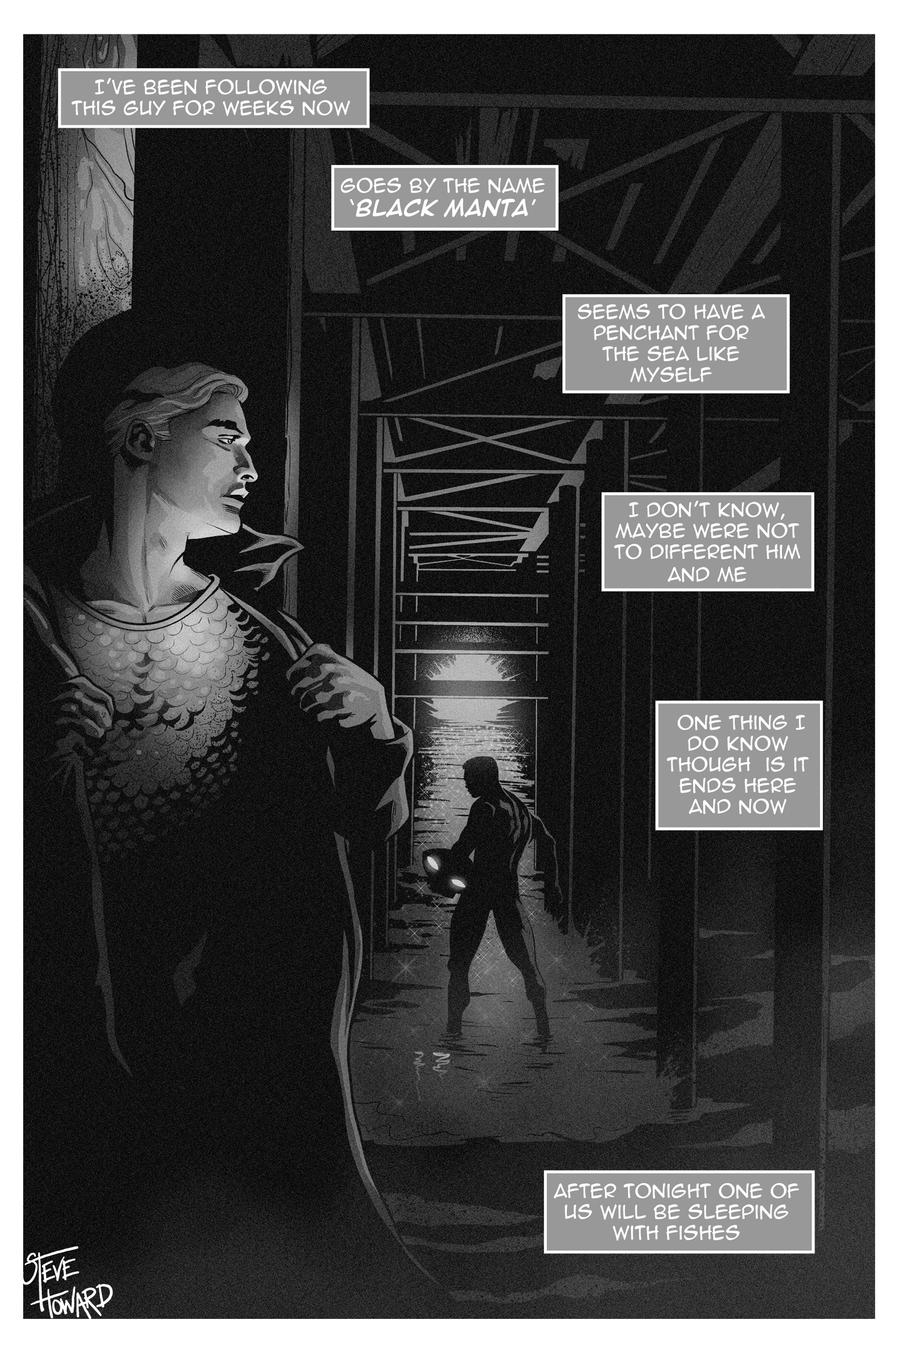 TLIID 97 Comic Book Characters Noir Style by StevenHoward